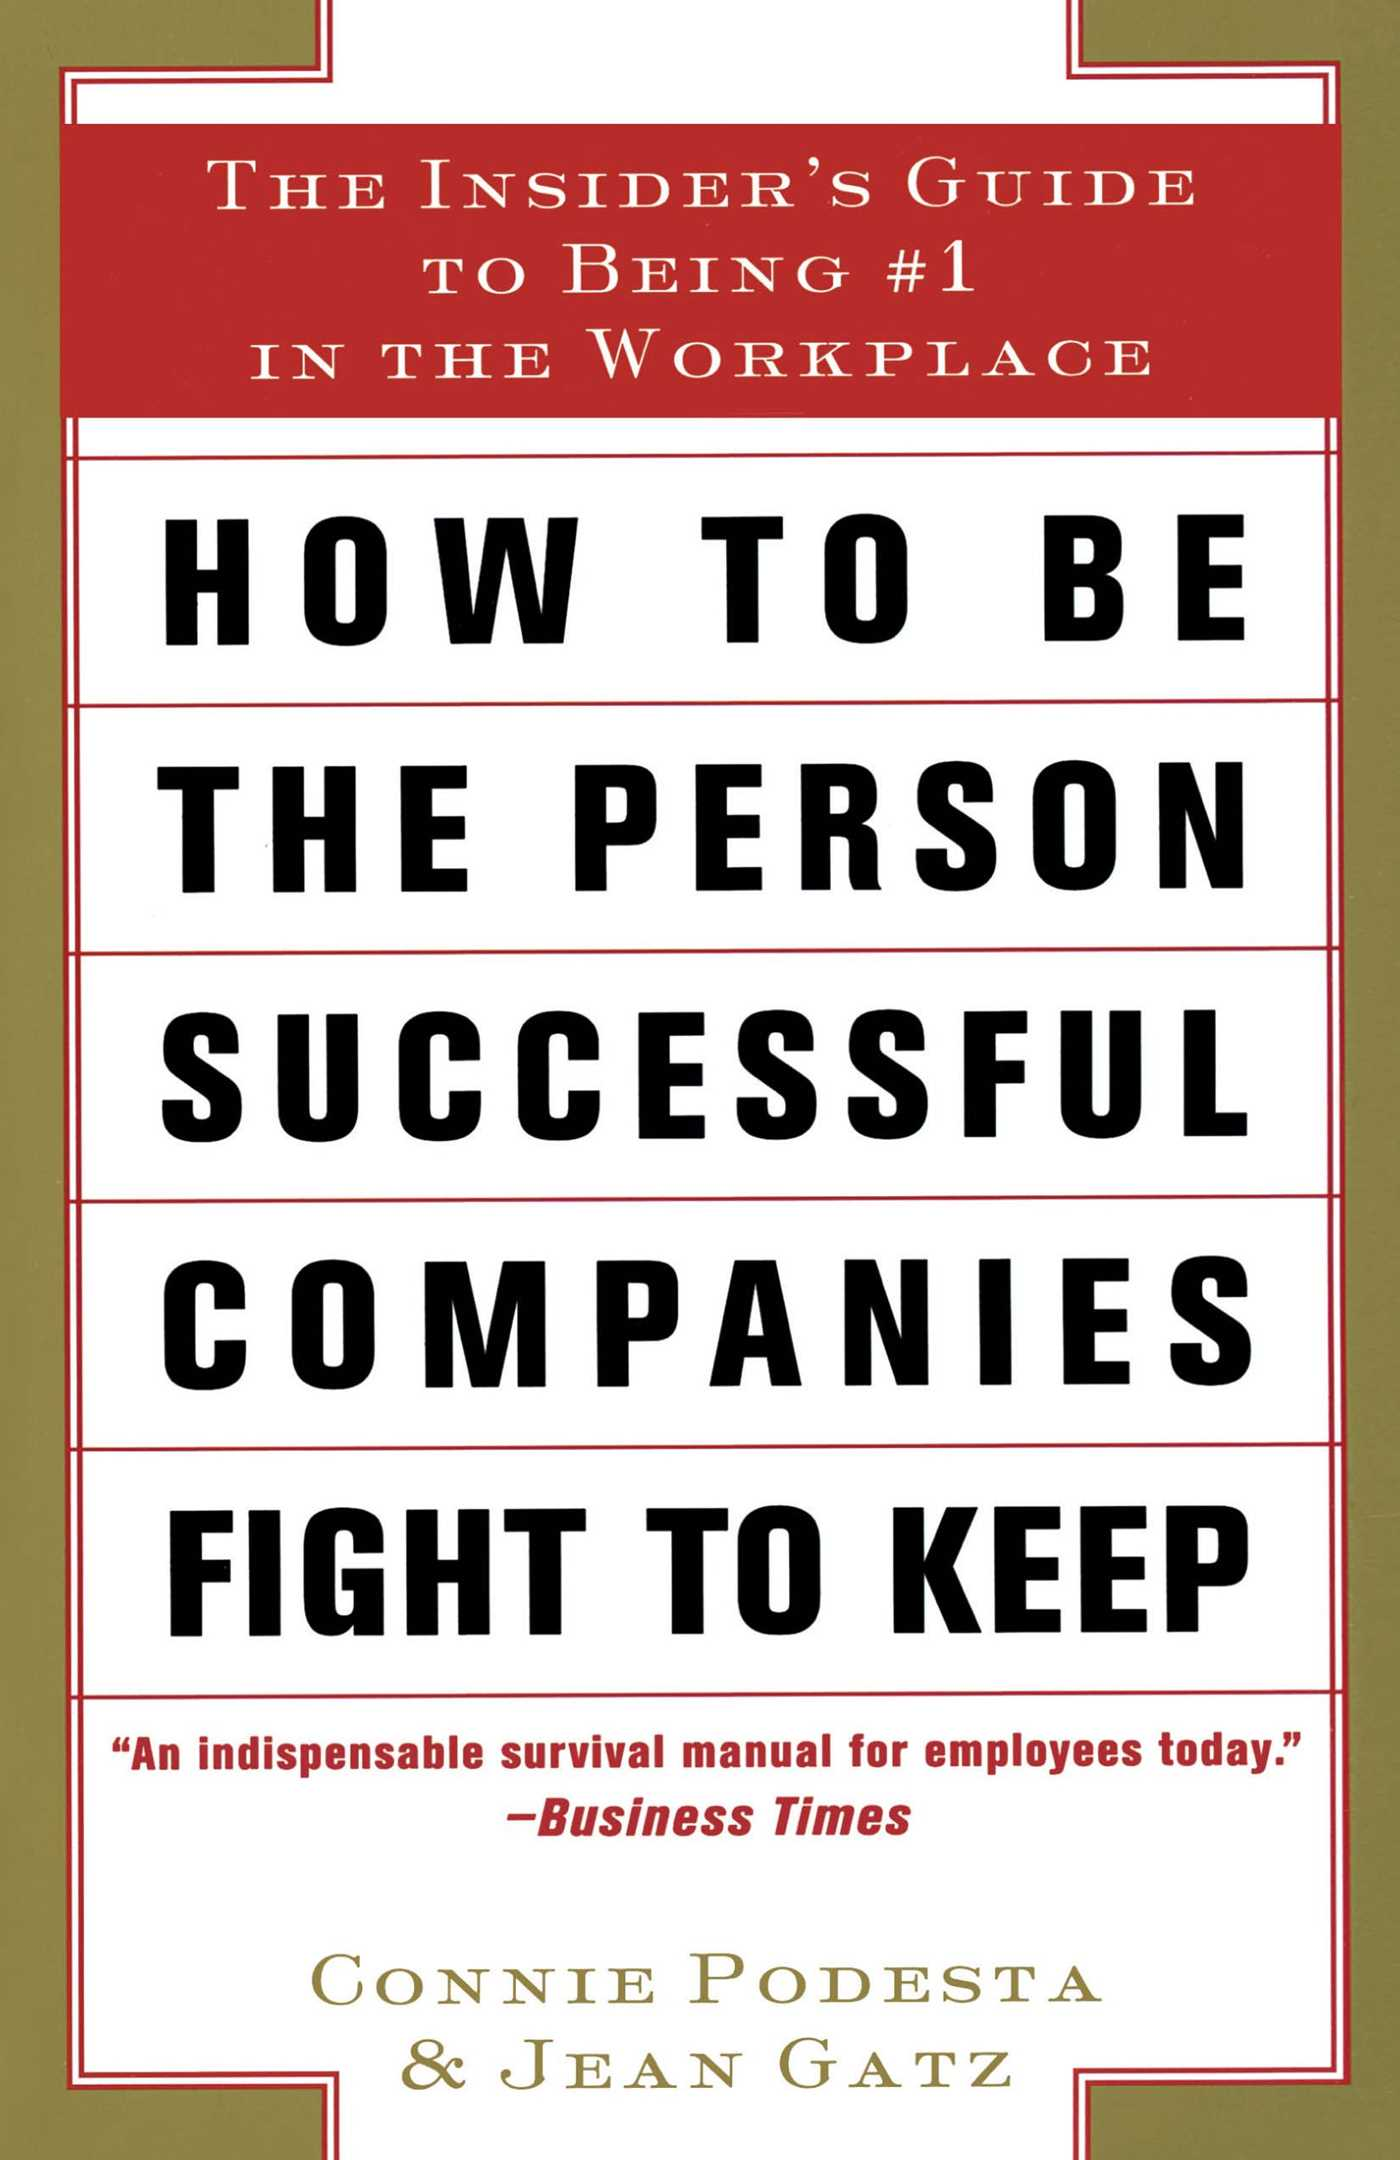 How-to-be-the-person-successful-companies-fight-9780684840086_hr